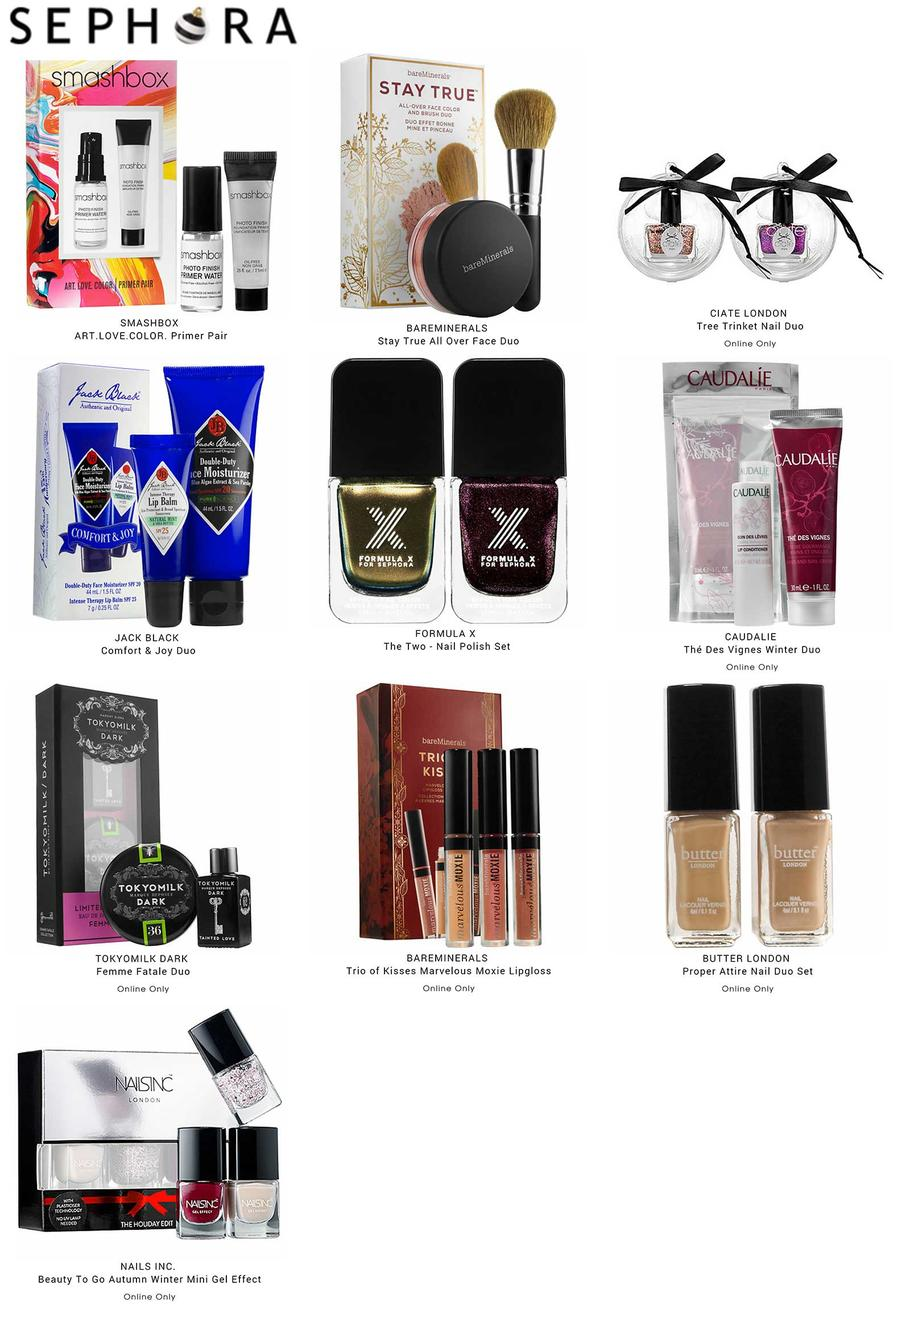 Sephora-black-friday-2015-ad-scan-p00003